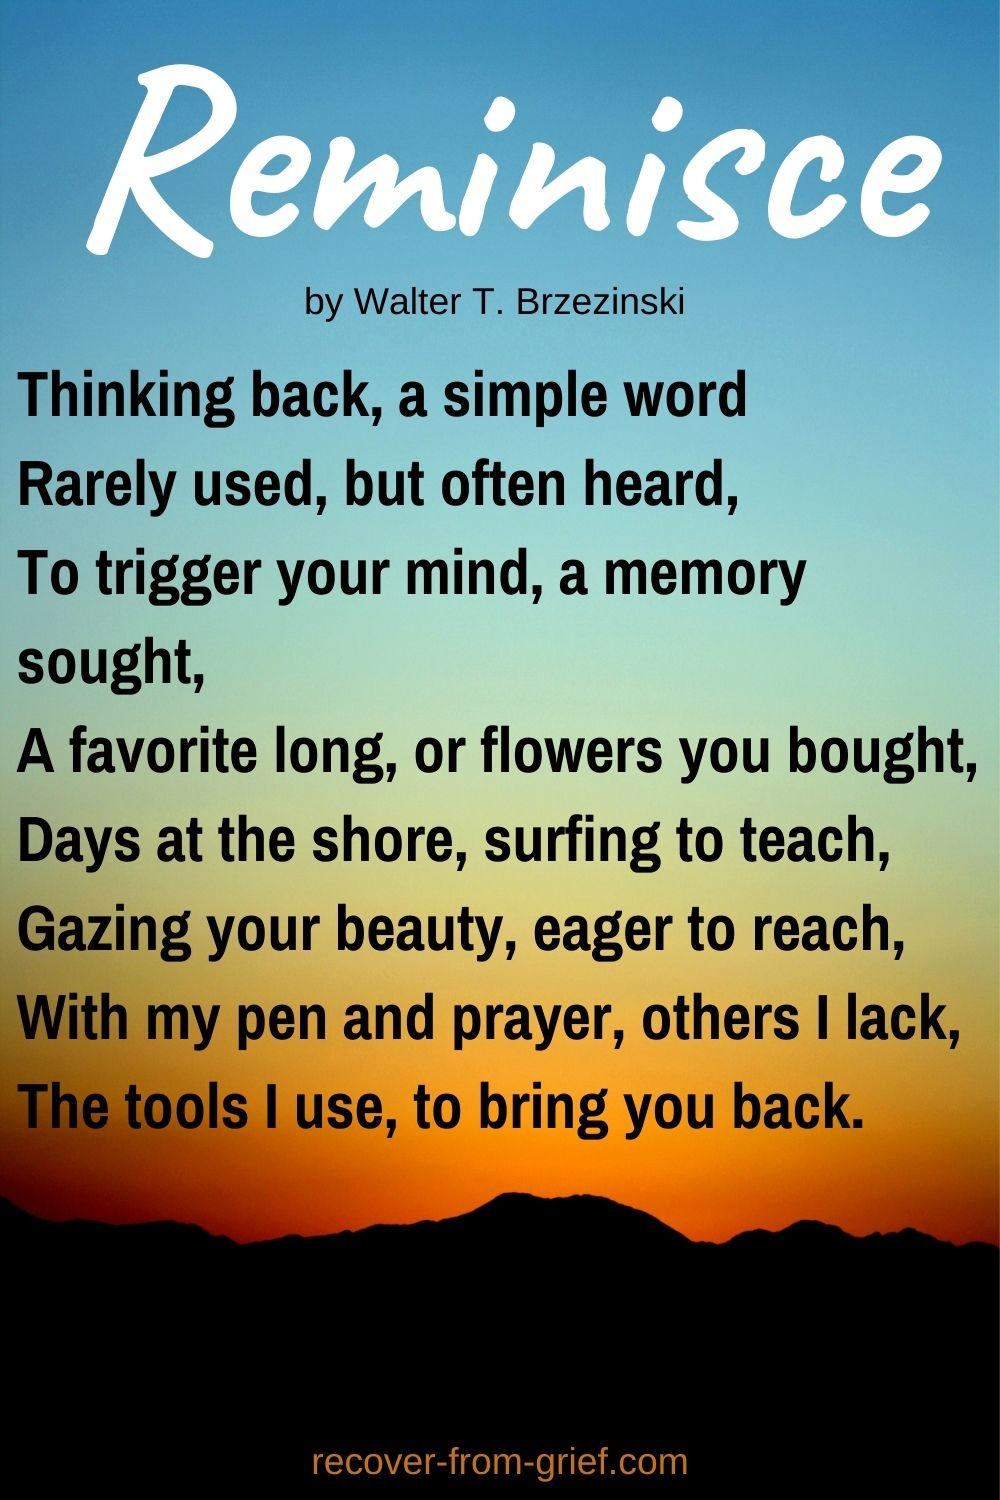 Reminisce -a grief poem by Walter T. Brzezinski